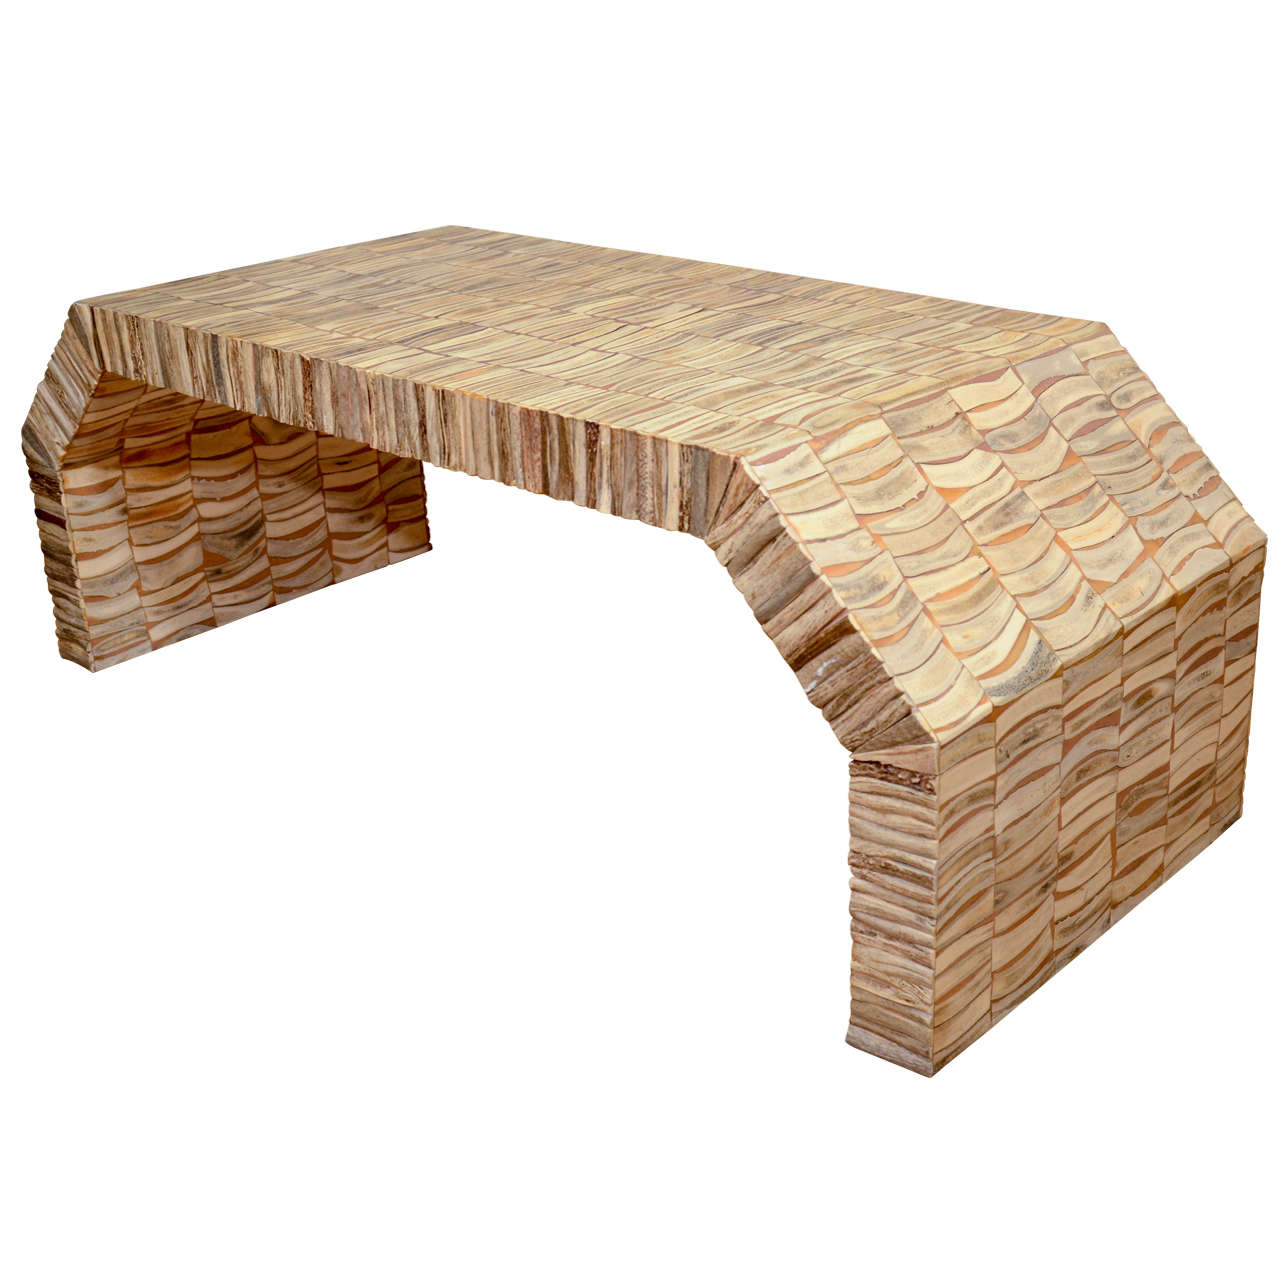 Inlaid Bone Veneer Angled Waterfall Coffee Table at 1stdibs